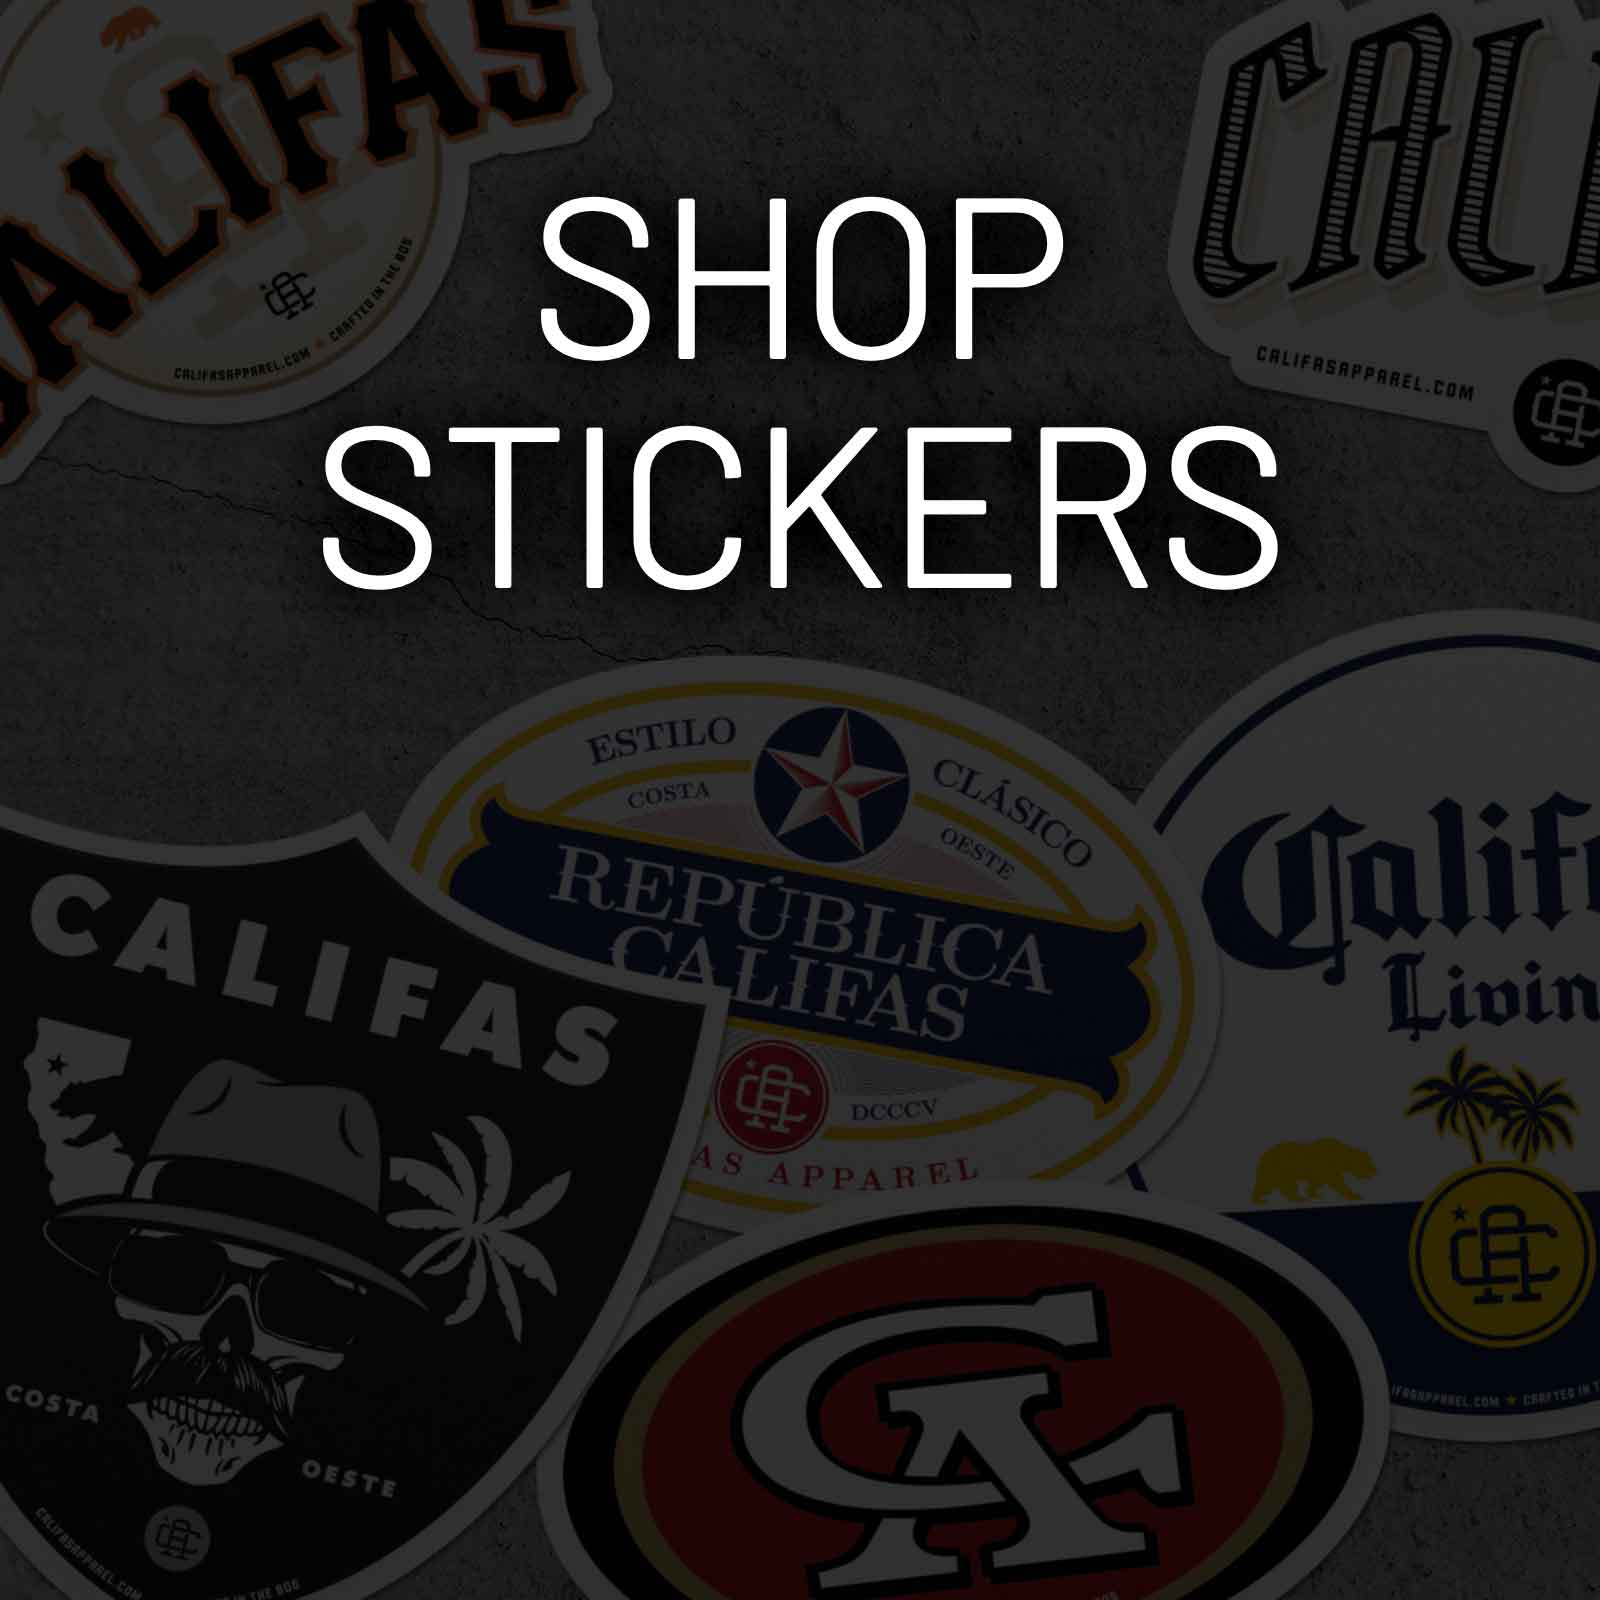 Califas Apparel product thumbnail stickers